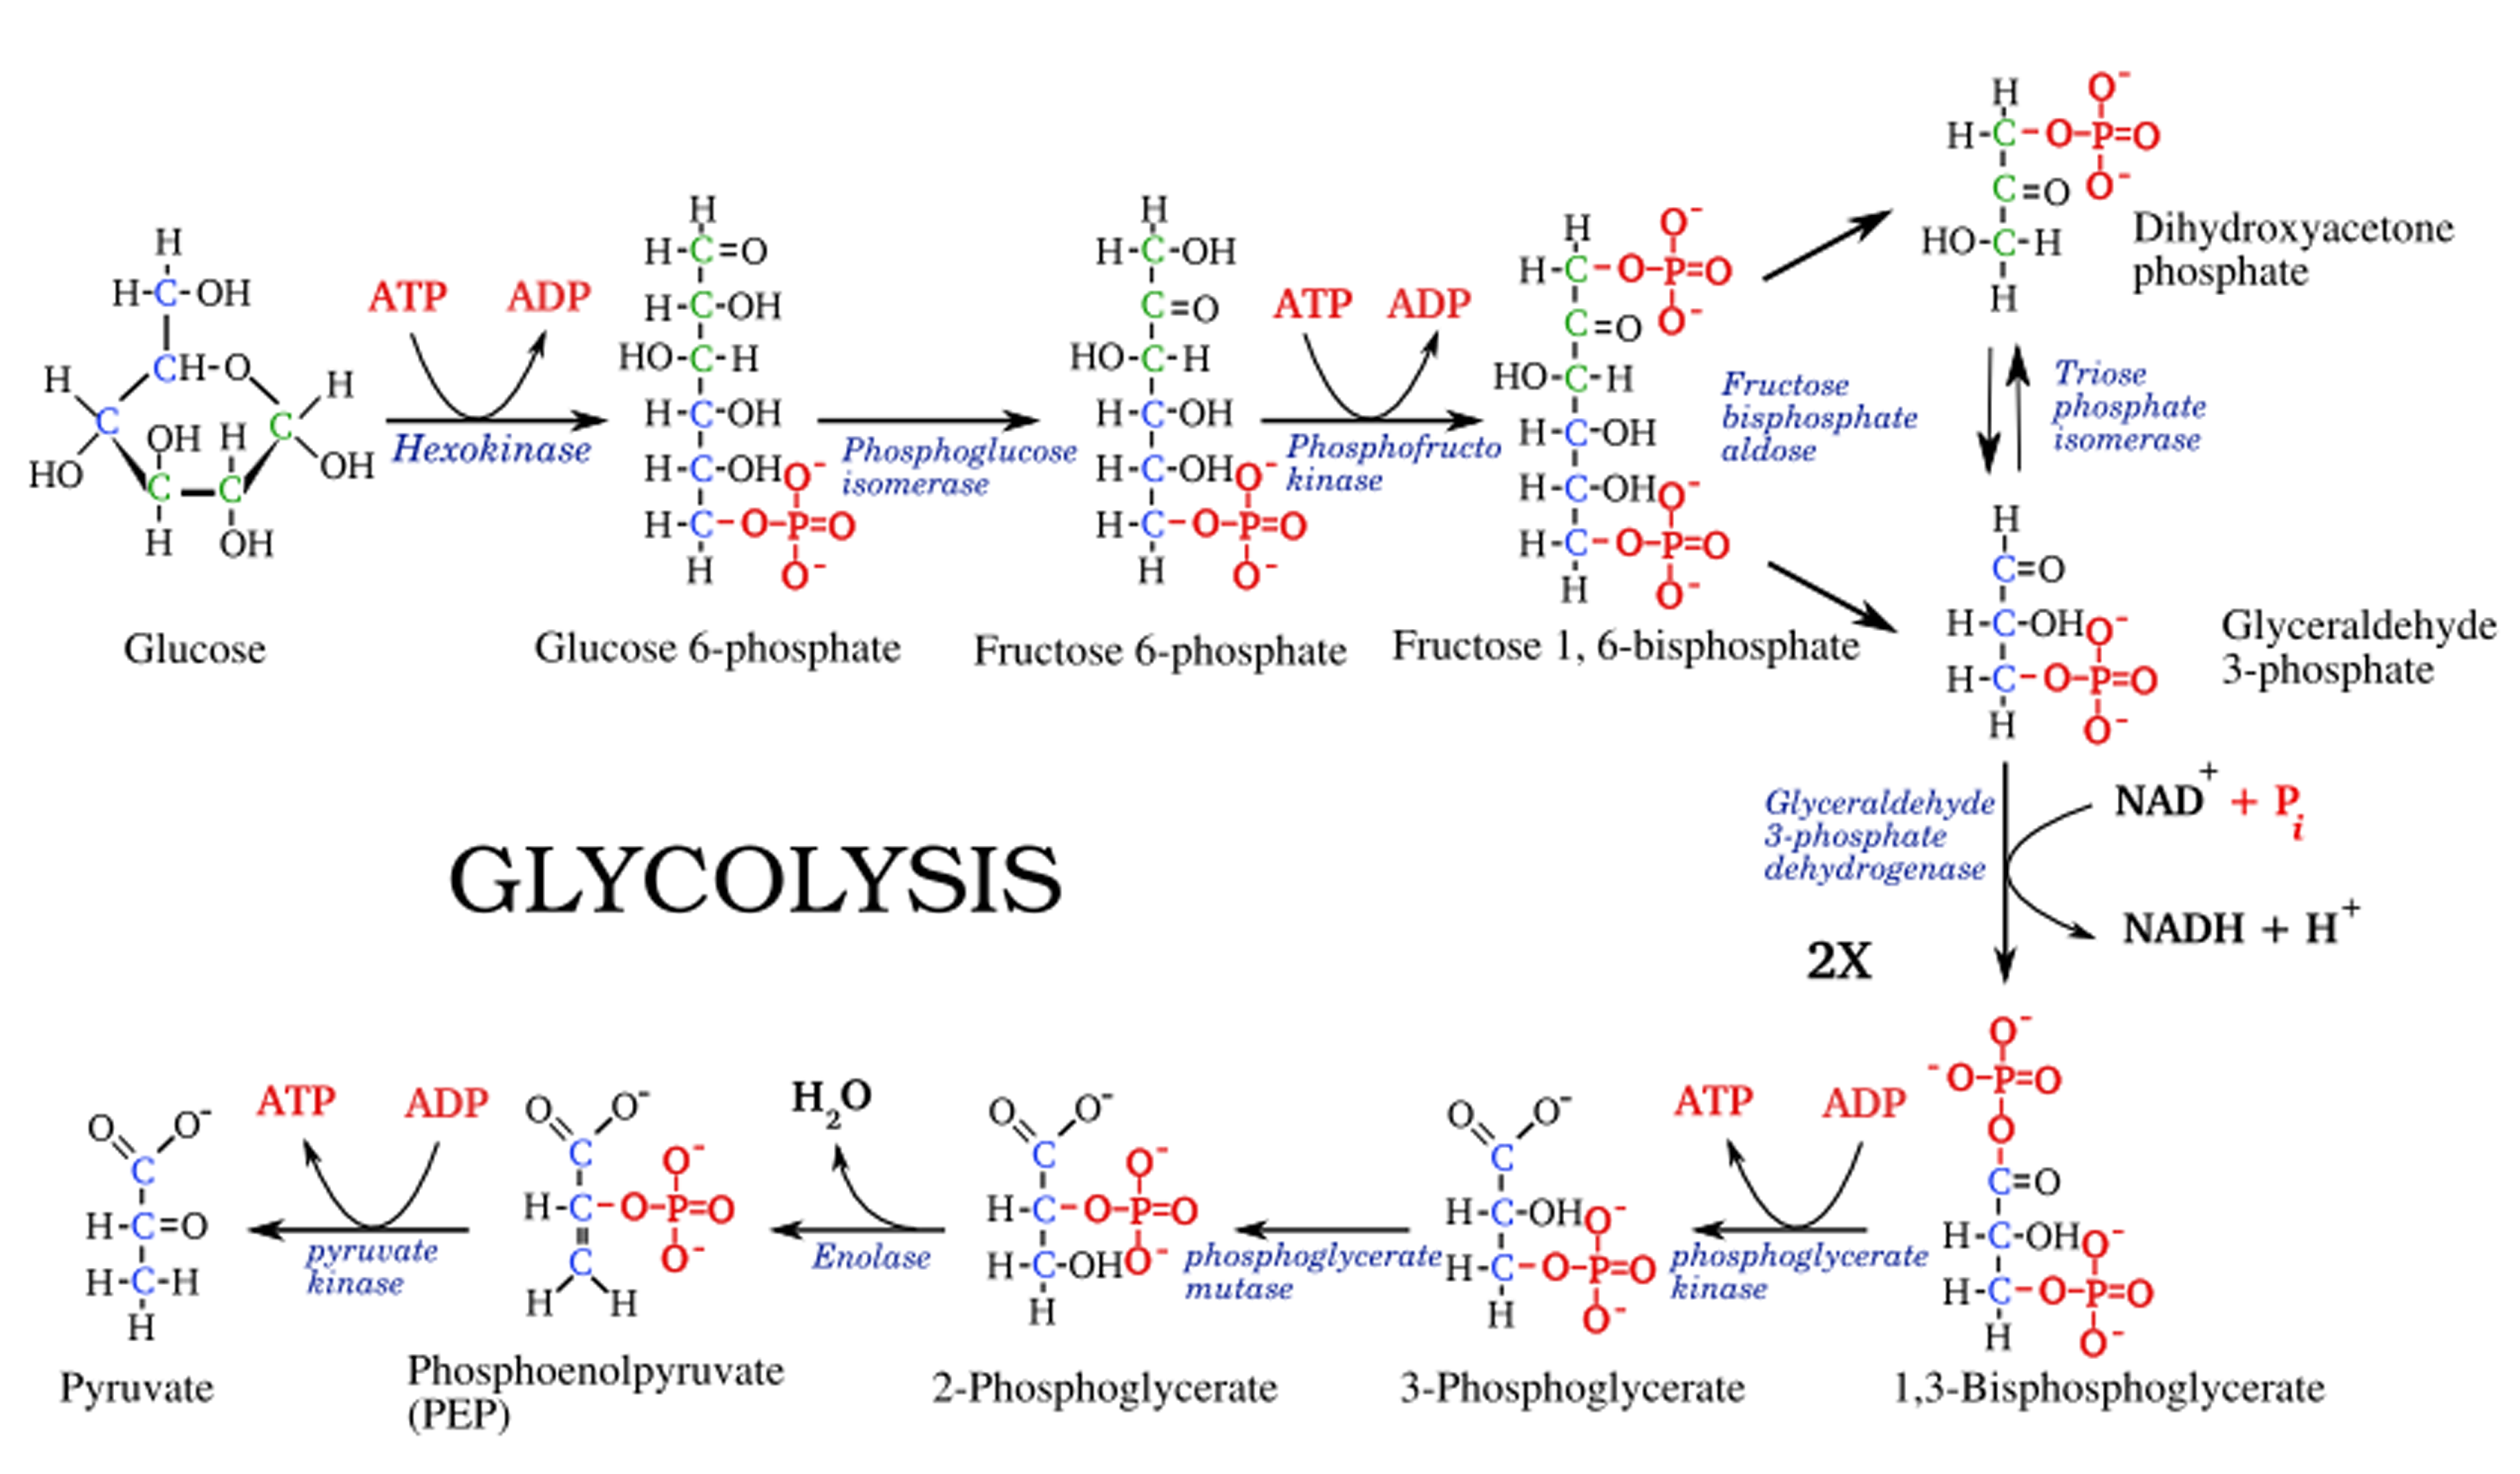 http://www.cscsquestions.com/wp-content/uploads/2015/01/Glycolysis1.png